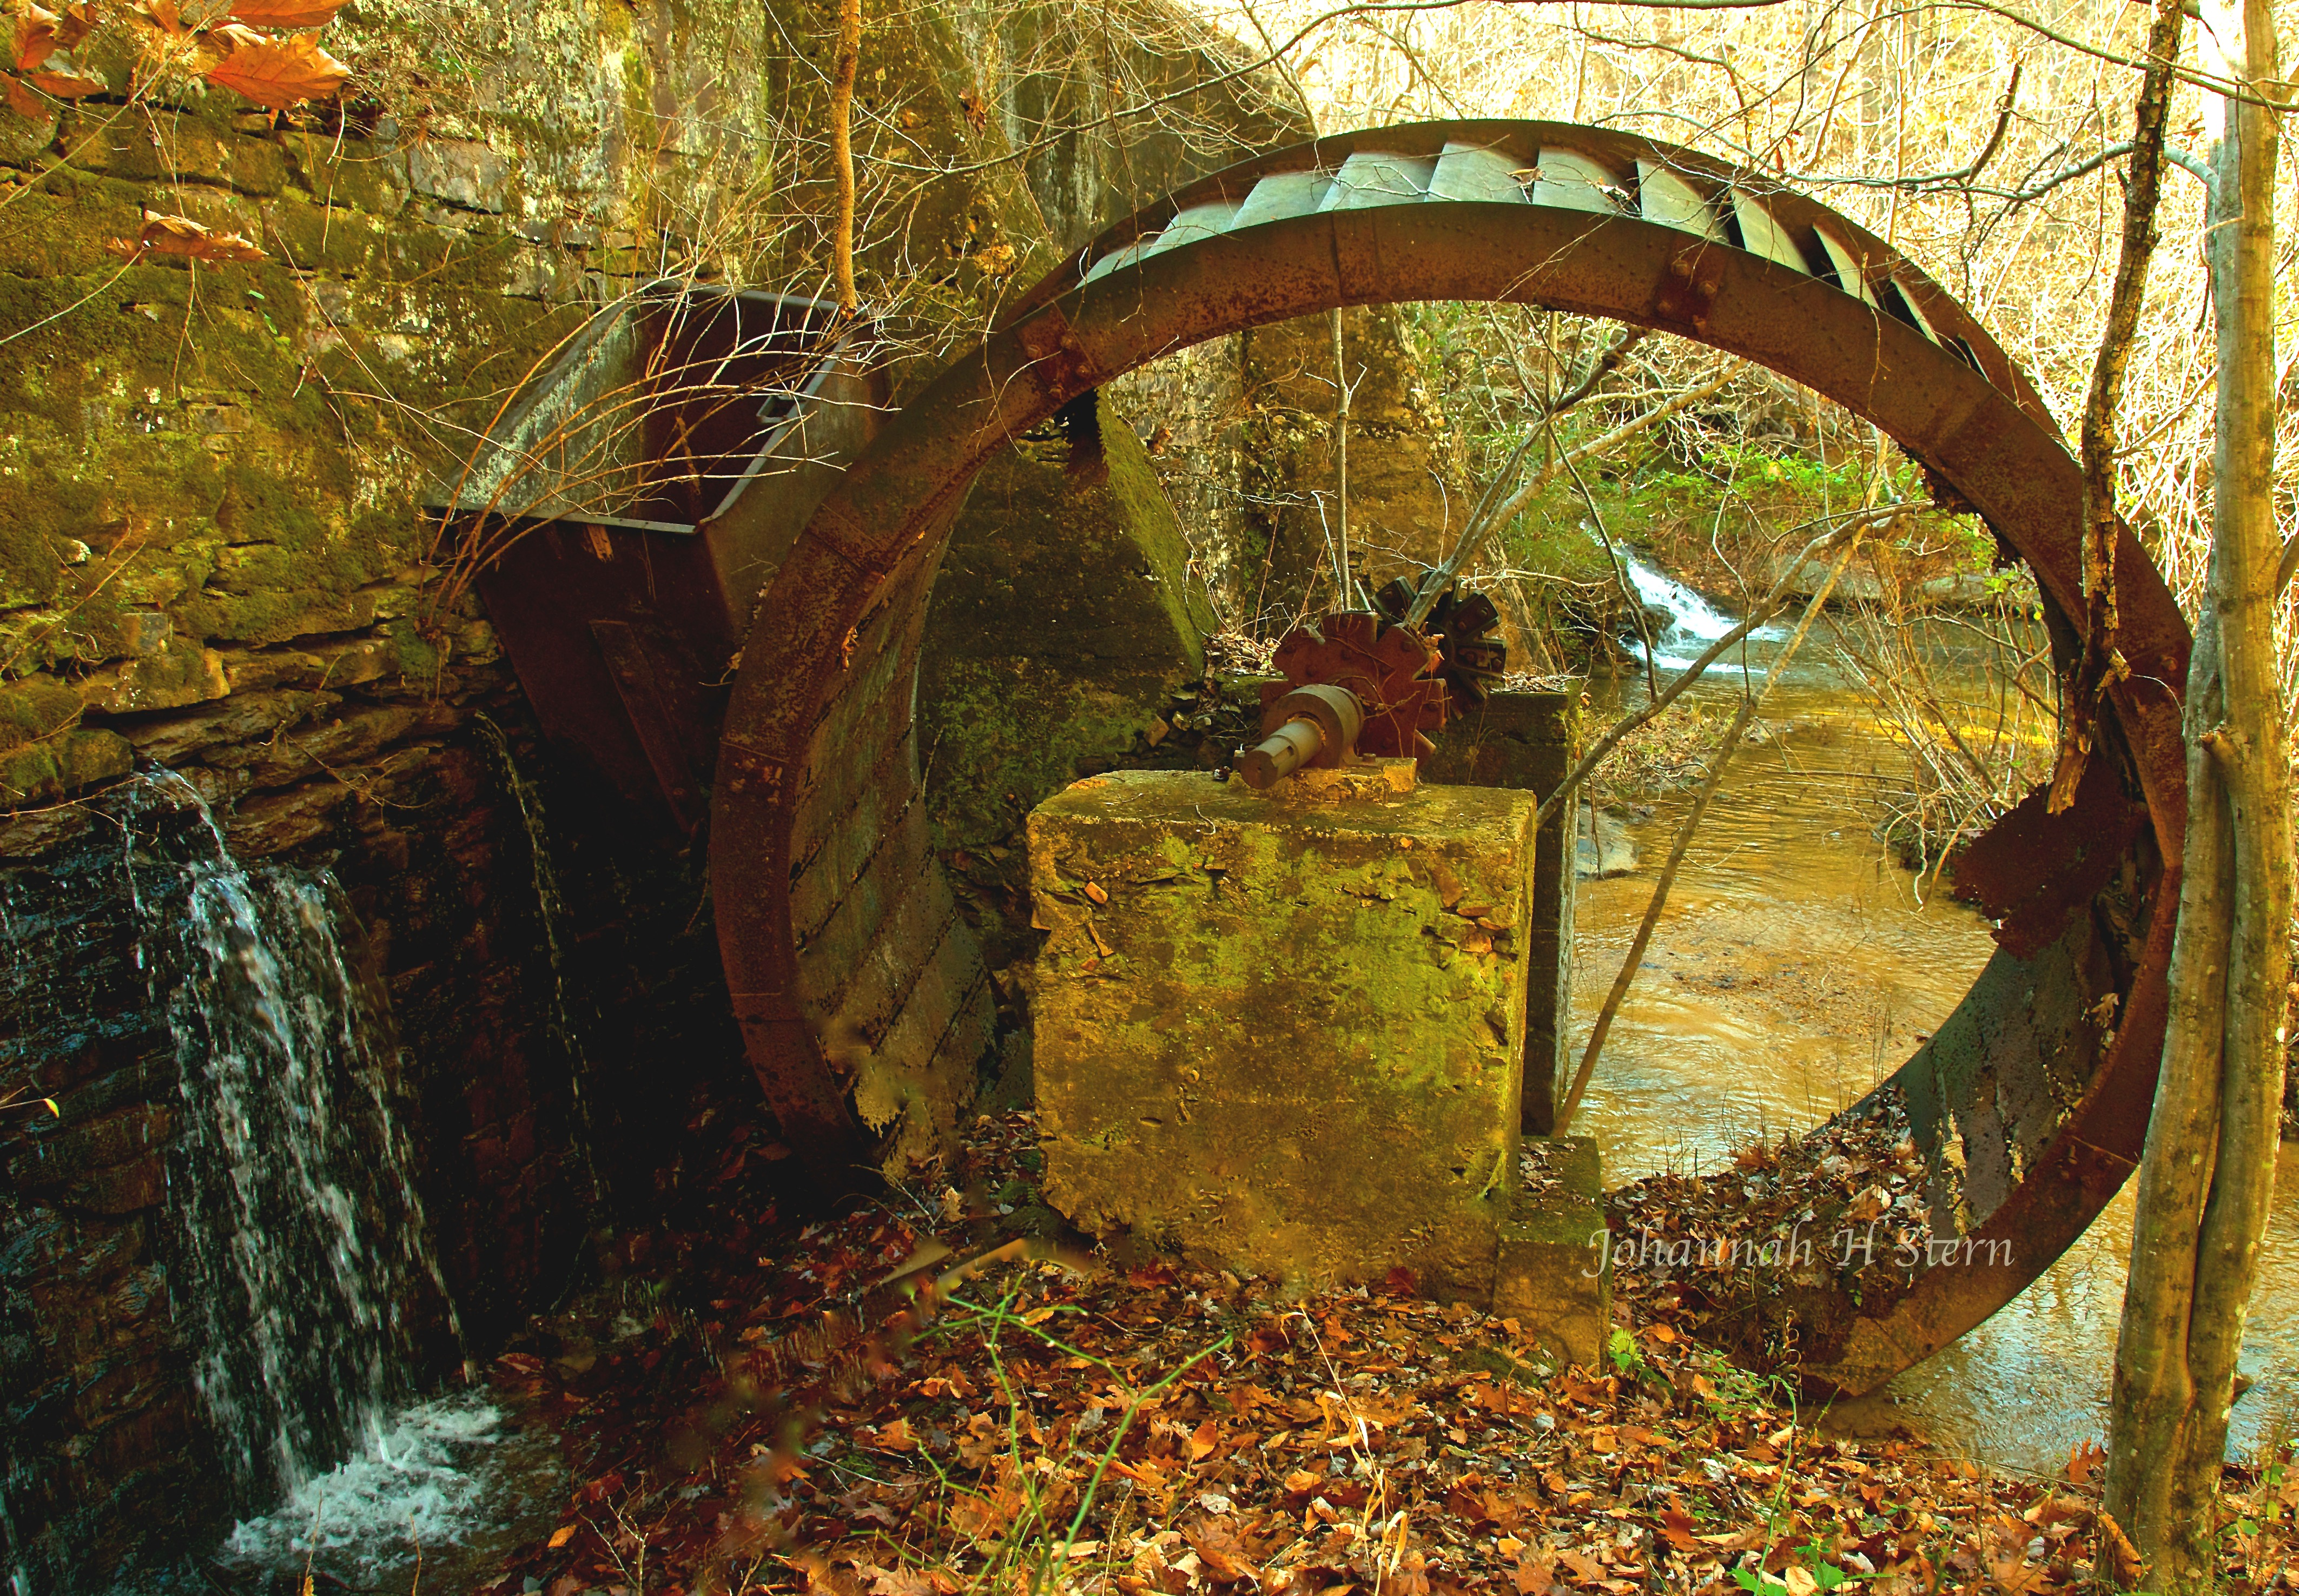 Vade Mecum Dam and Water Wheel at Hanging Rock State Park, photo by Johannah H. Stern